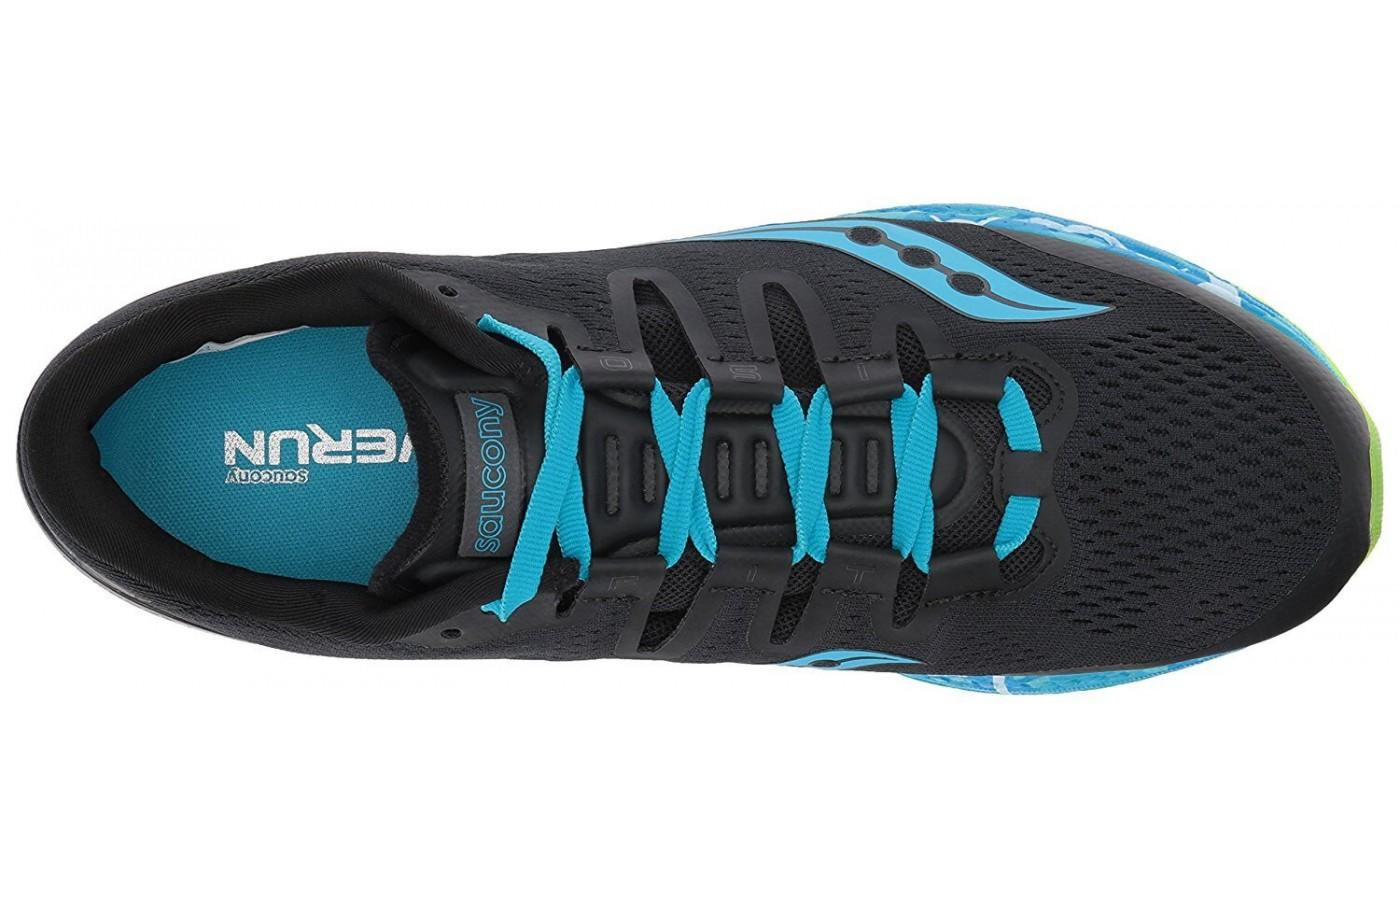 The Saucony Freedom ISO shown from directly above.